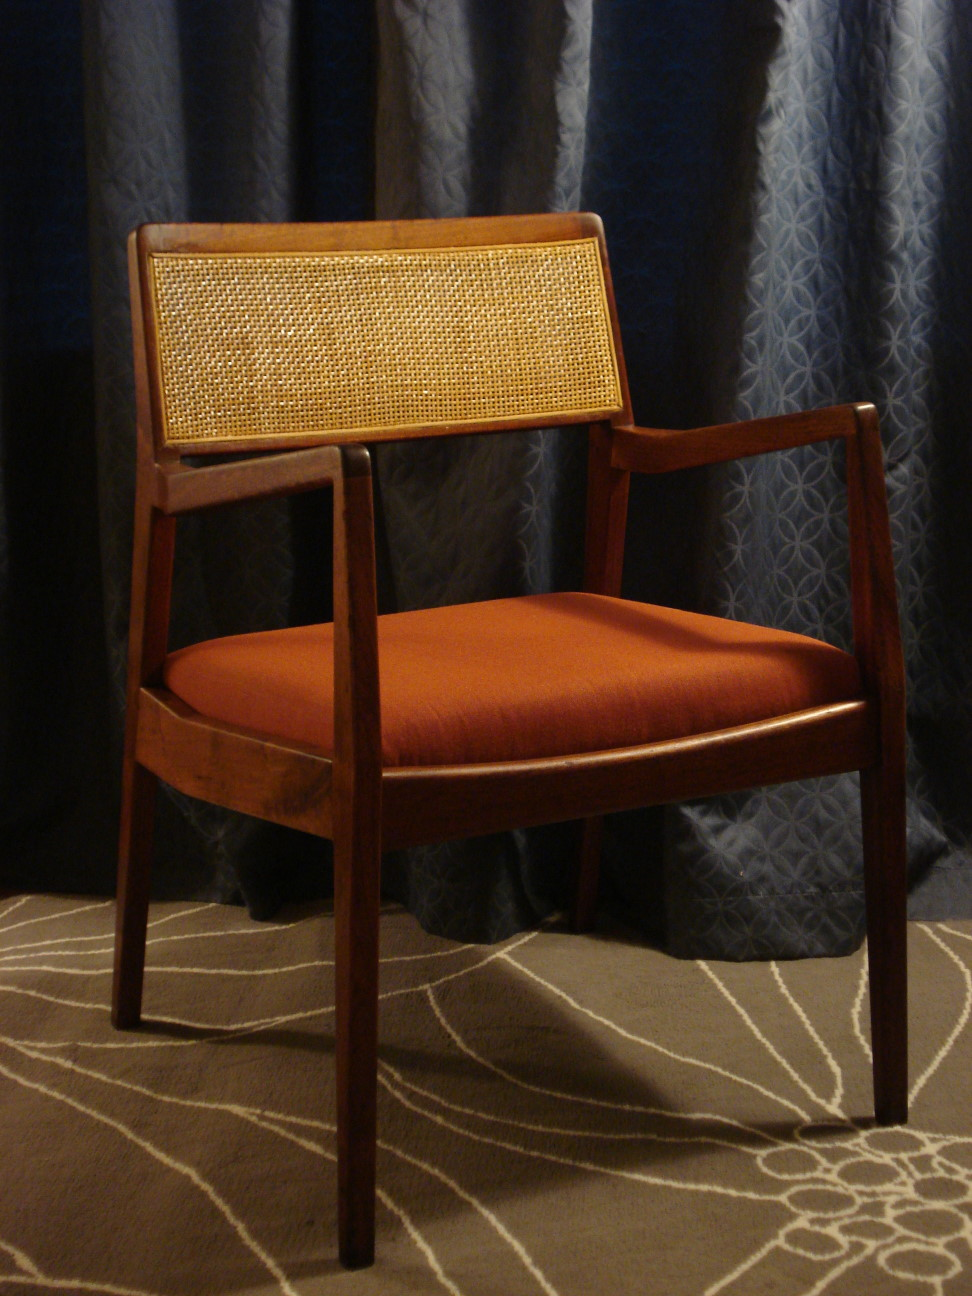 A sexy, dimly lit image of the Risom C140 Chair.